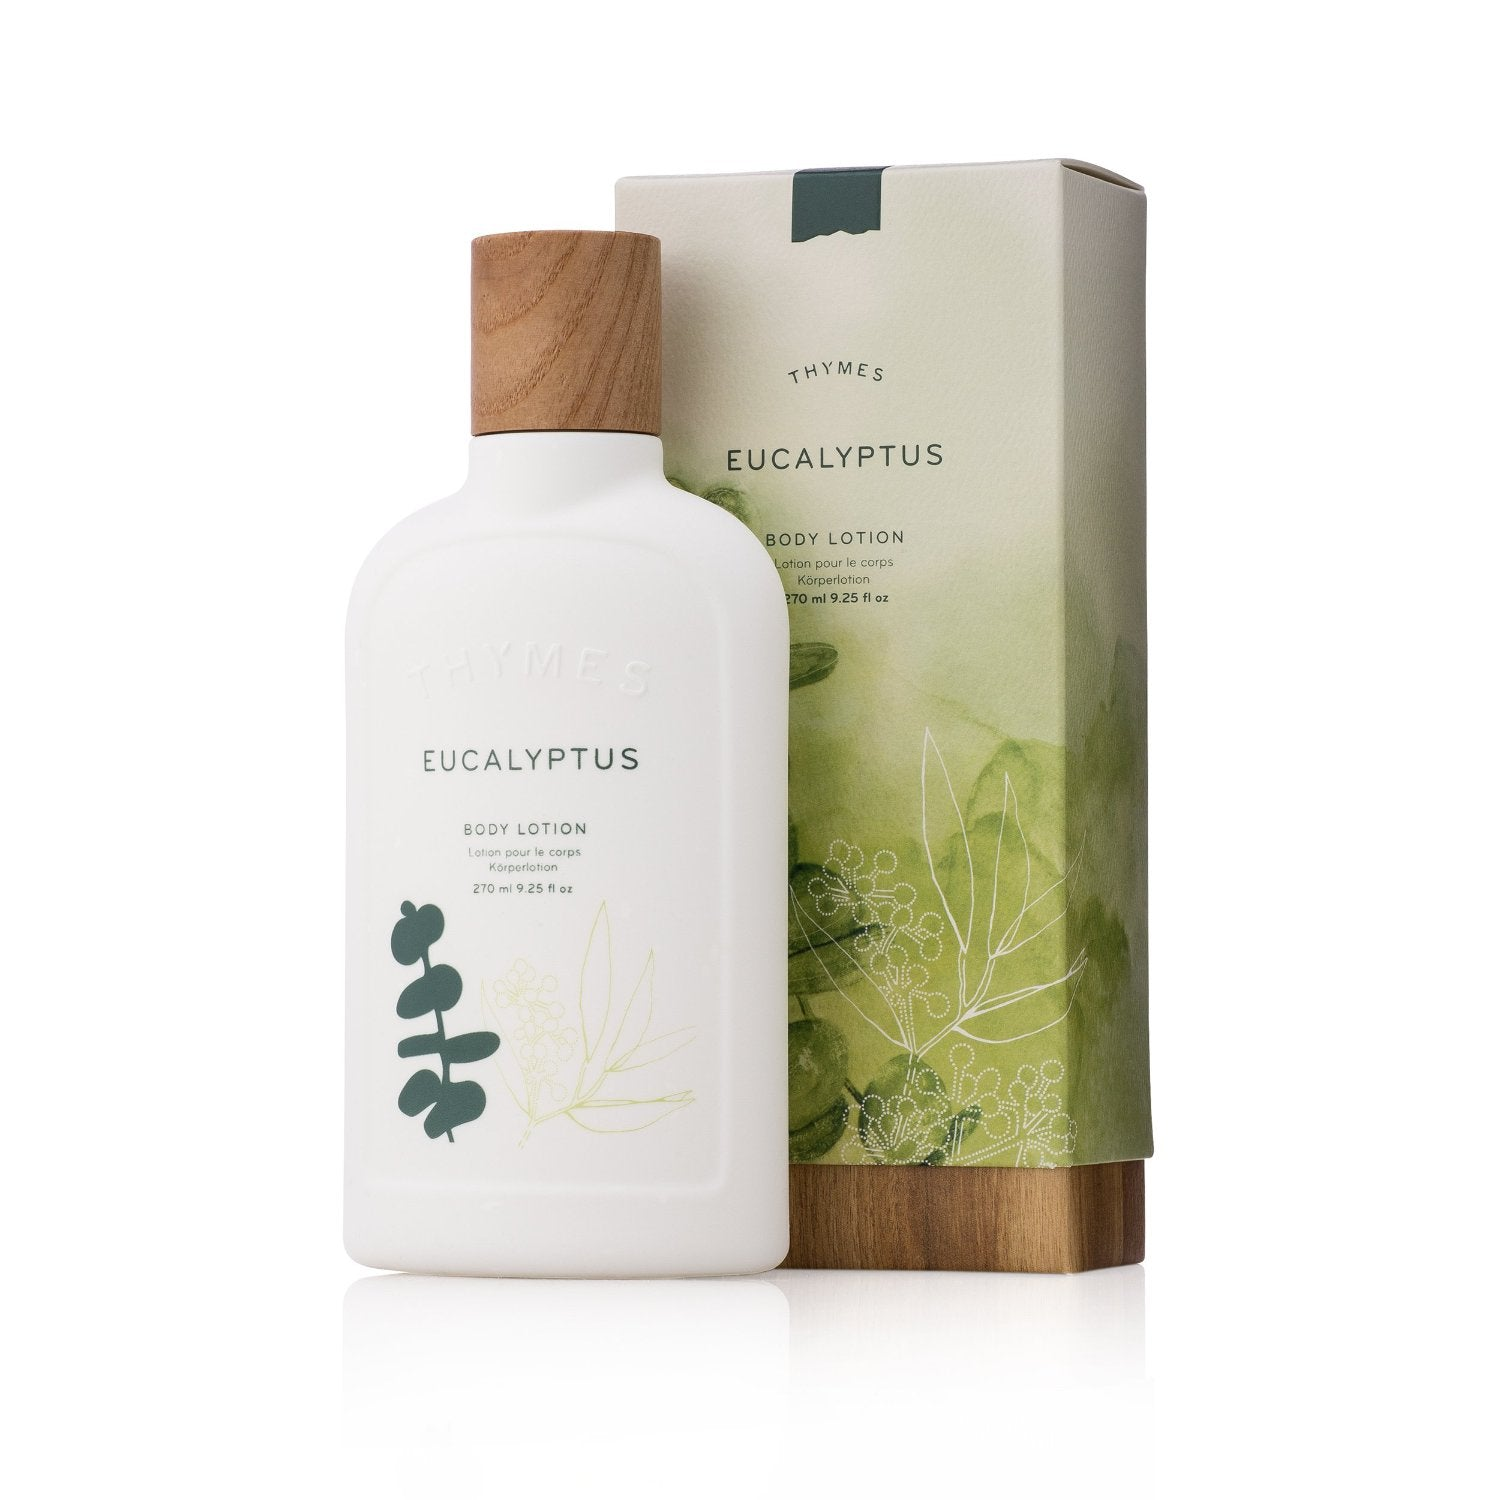 Thymes Eucalyptus Body Lotion